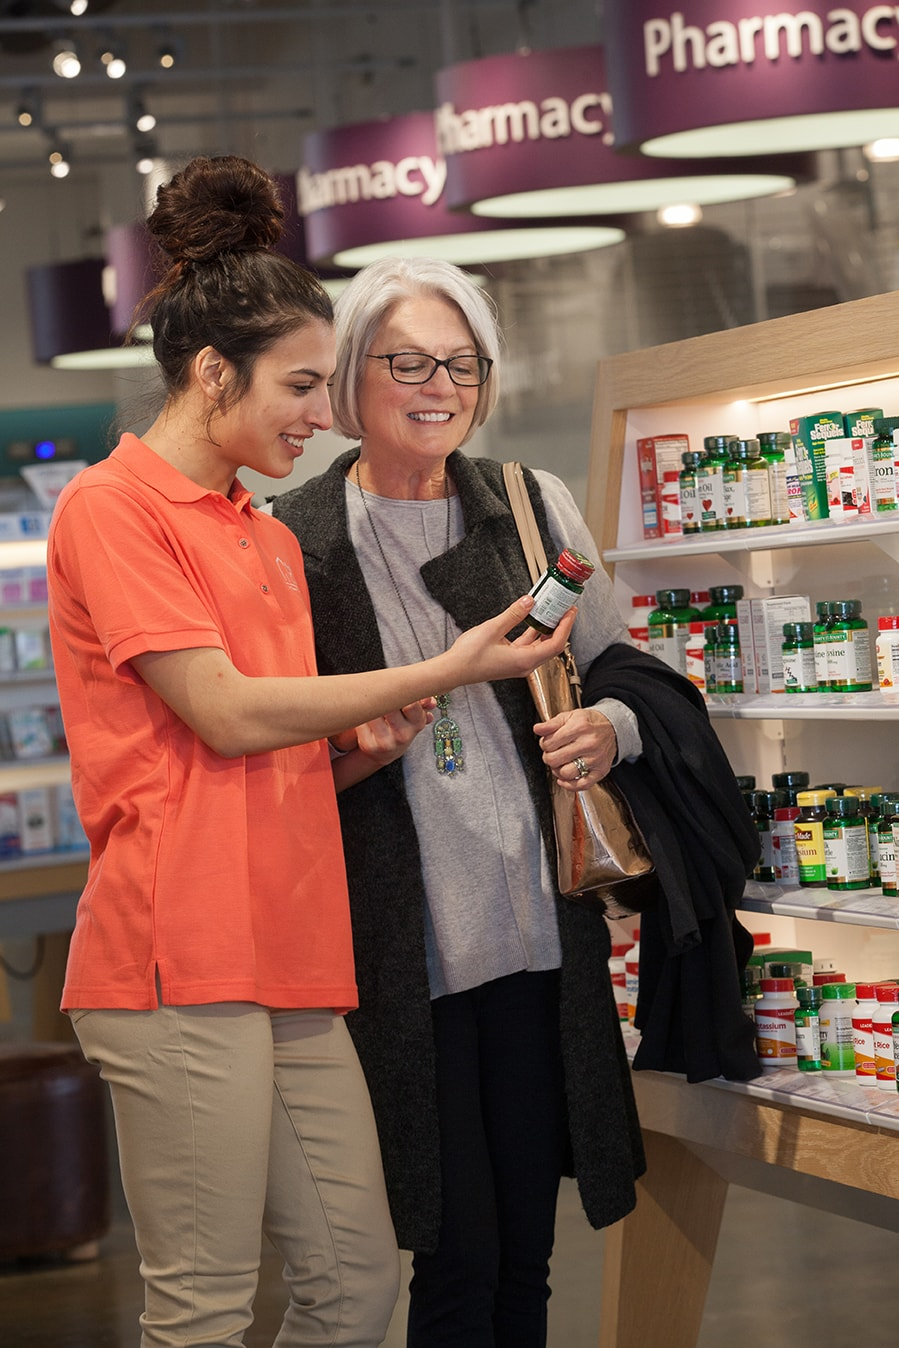 Caregiver assists senior at pharmacy